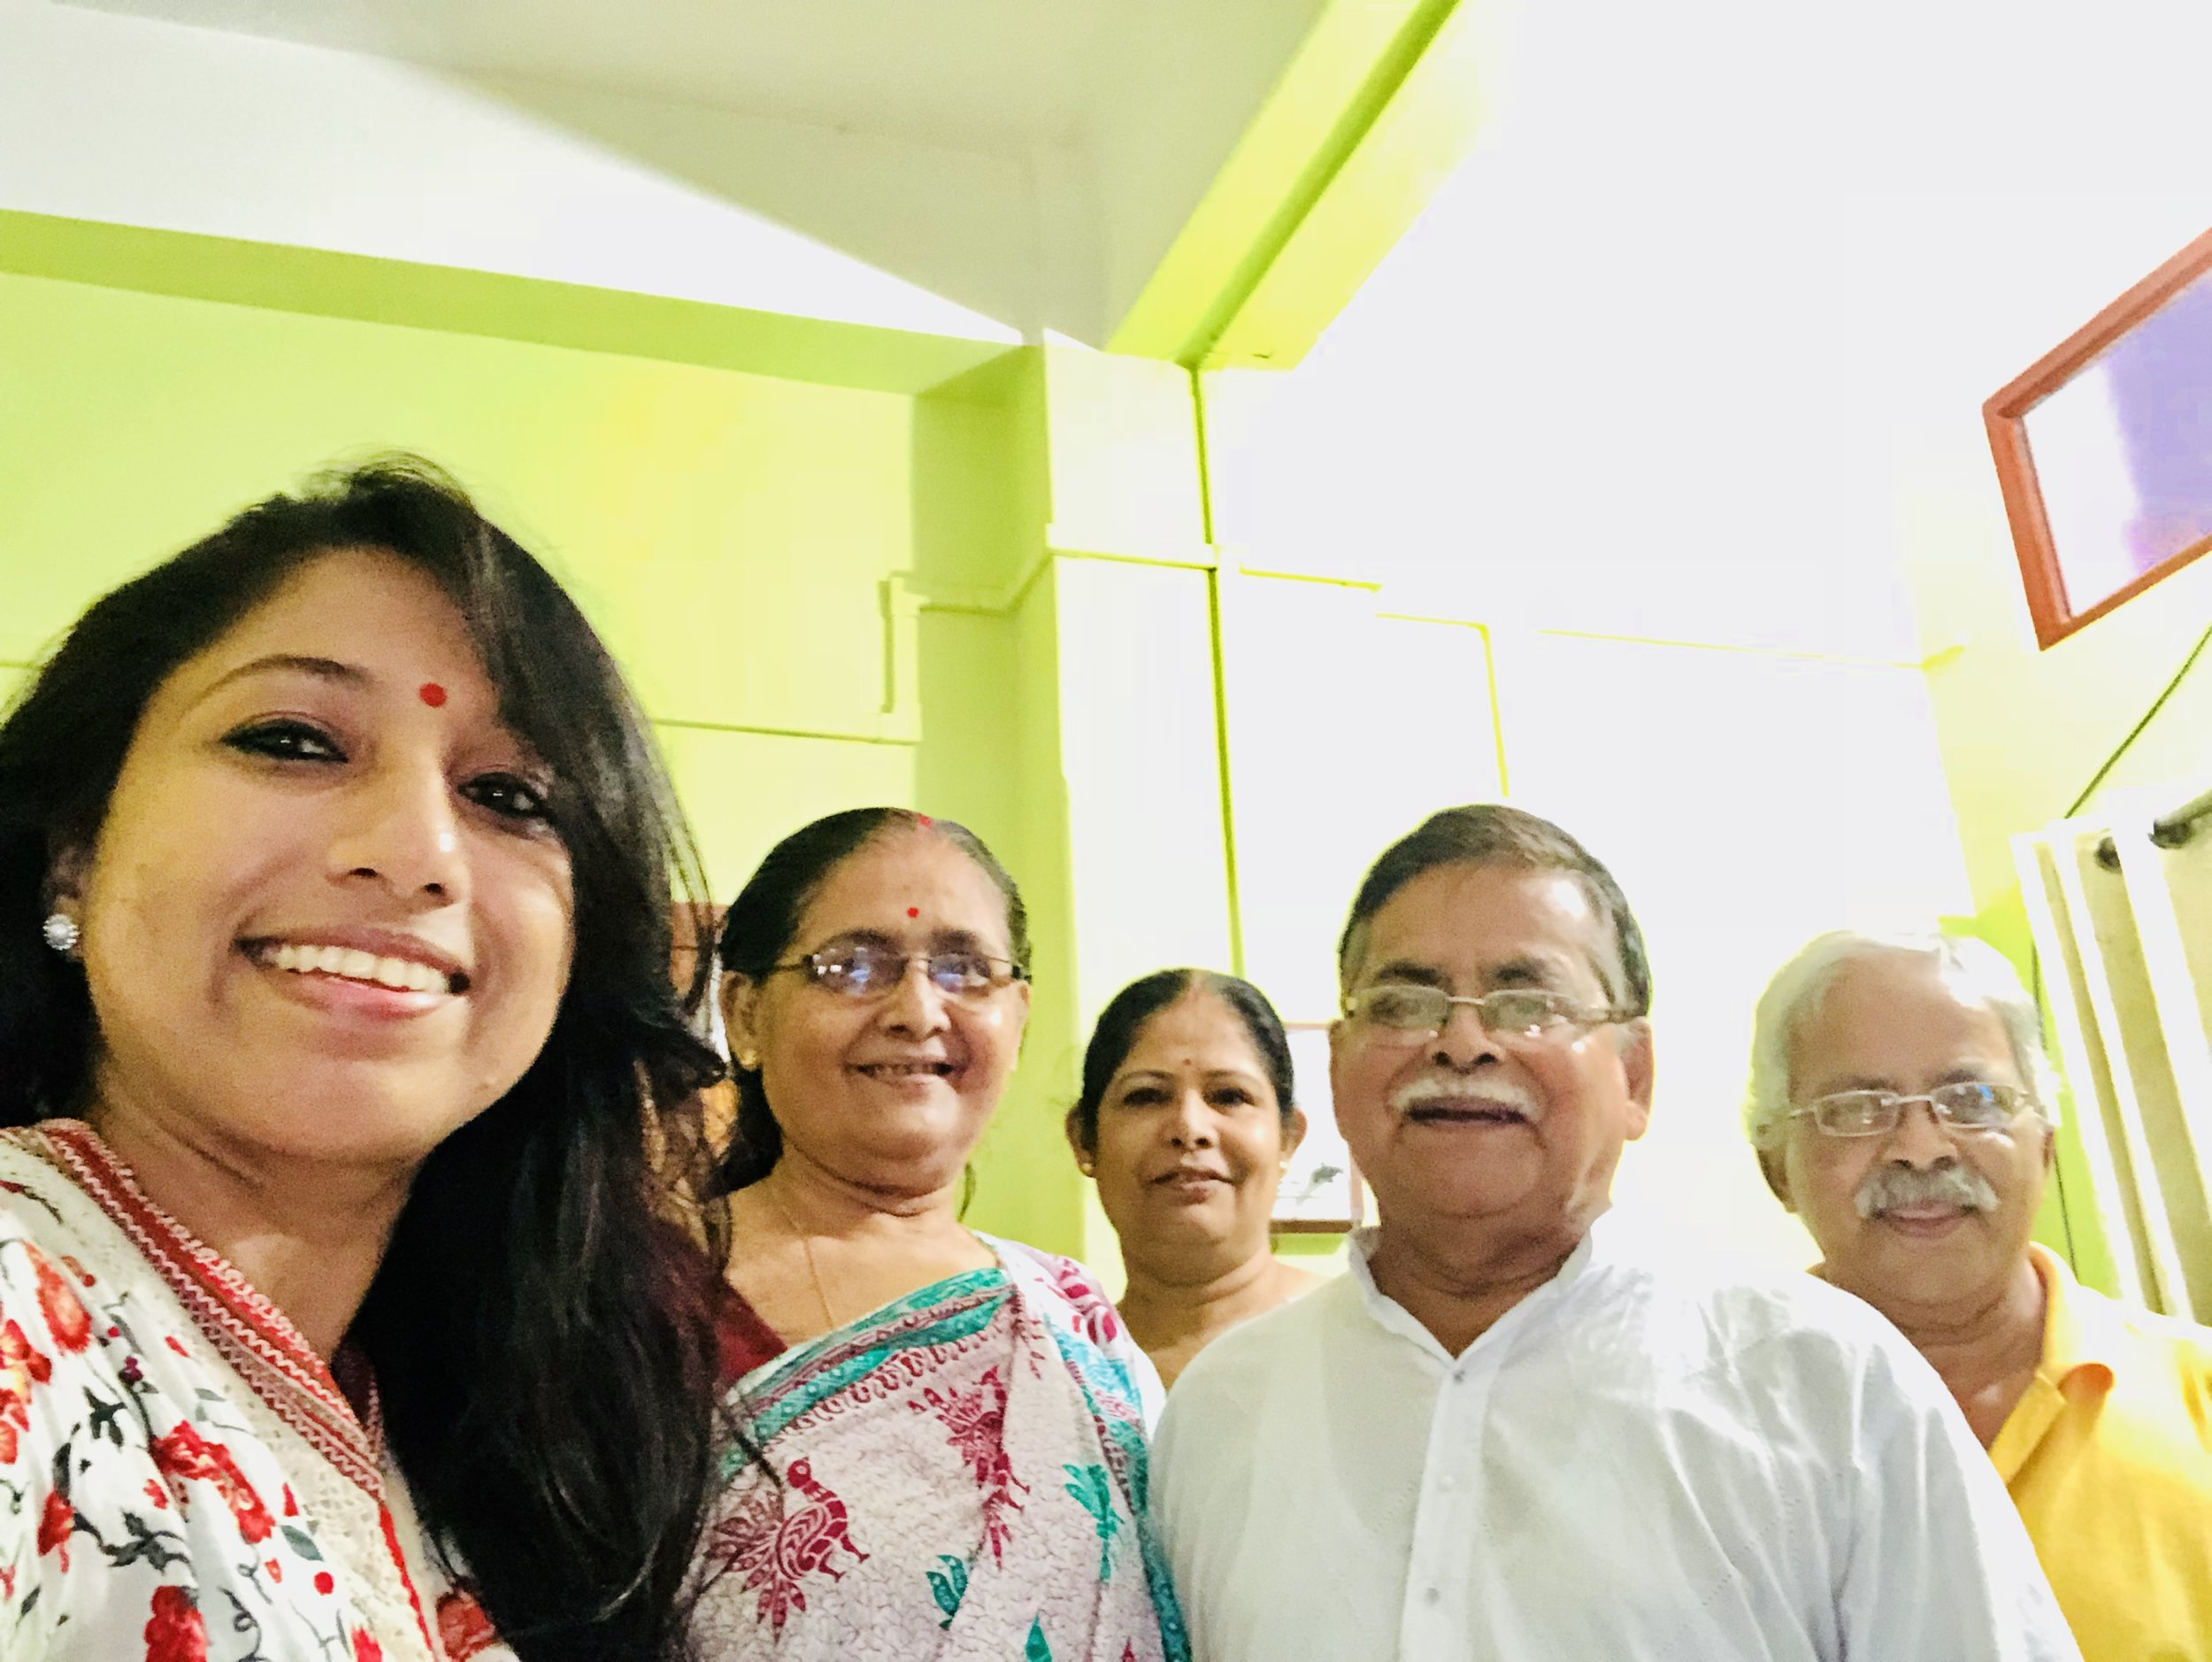 Mrs. Kalpana Choudhury, 10 year survivor, diagnosed at Stage III with her husband Mr. Kshitish Chudhury.. sister Mrs. Kalyani Roy Choudhury and brother-in-law Mr. Ratish Choudhury. Amazing family support.